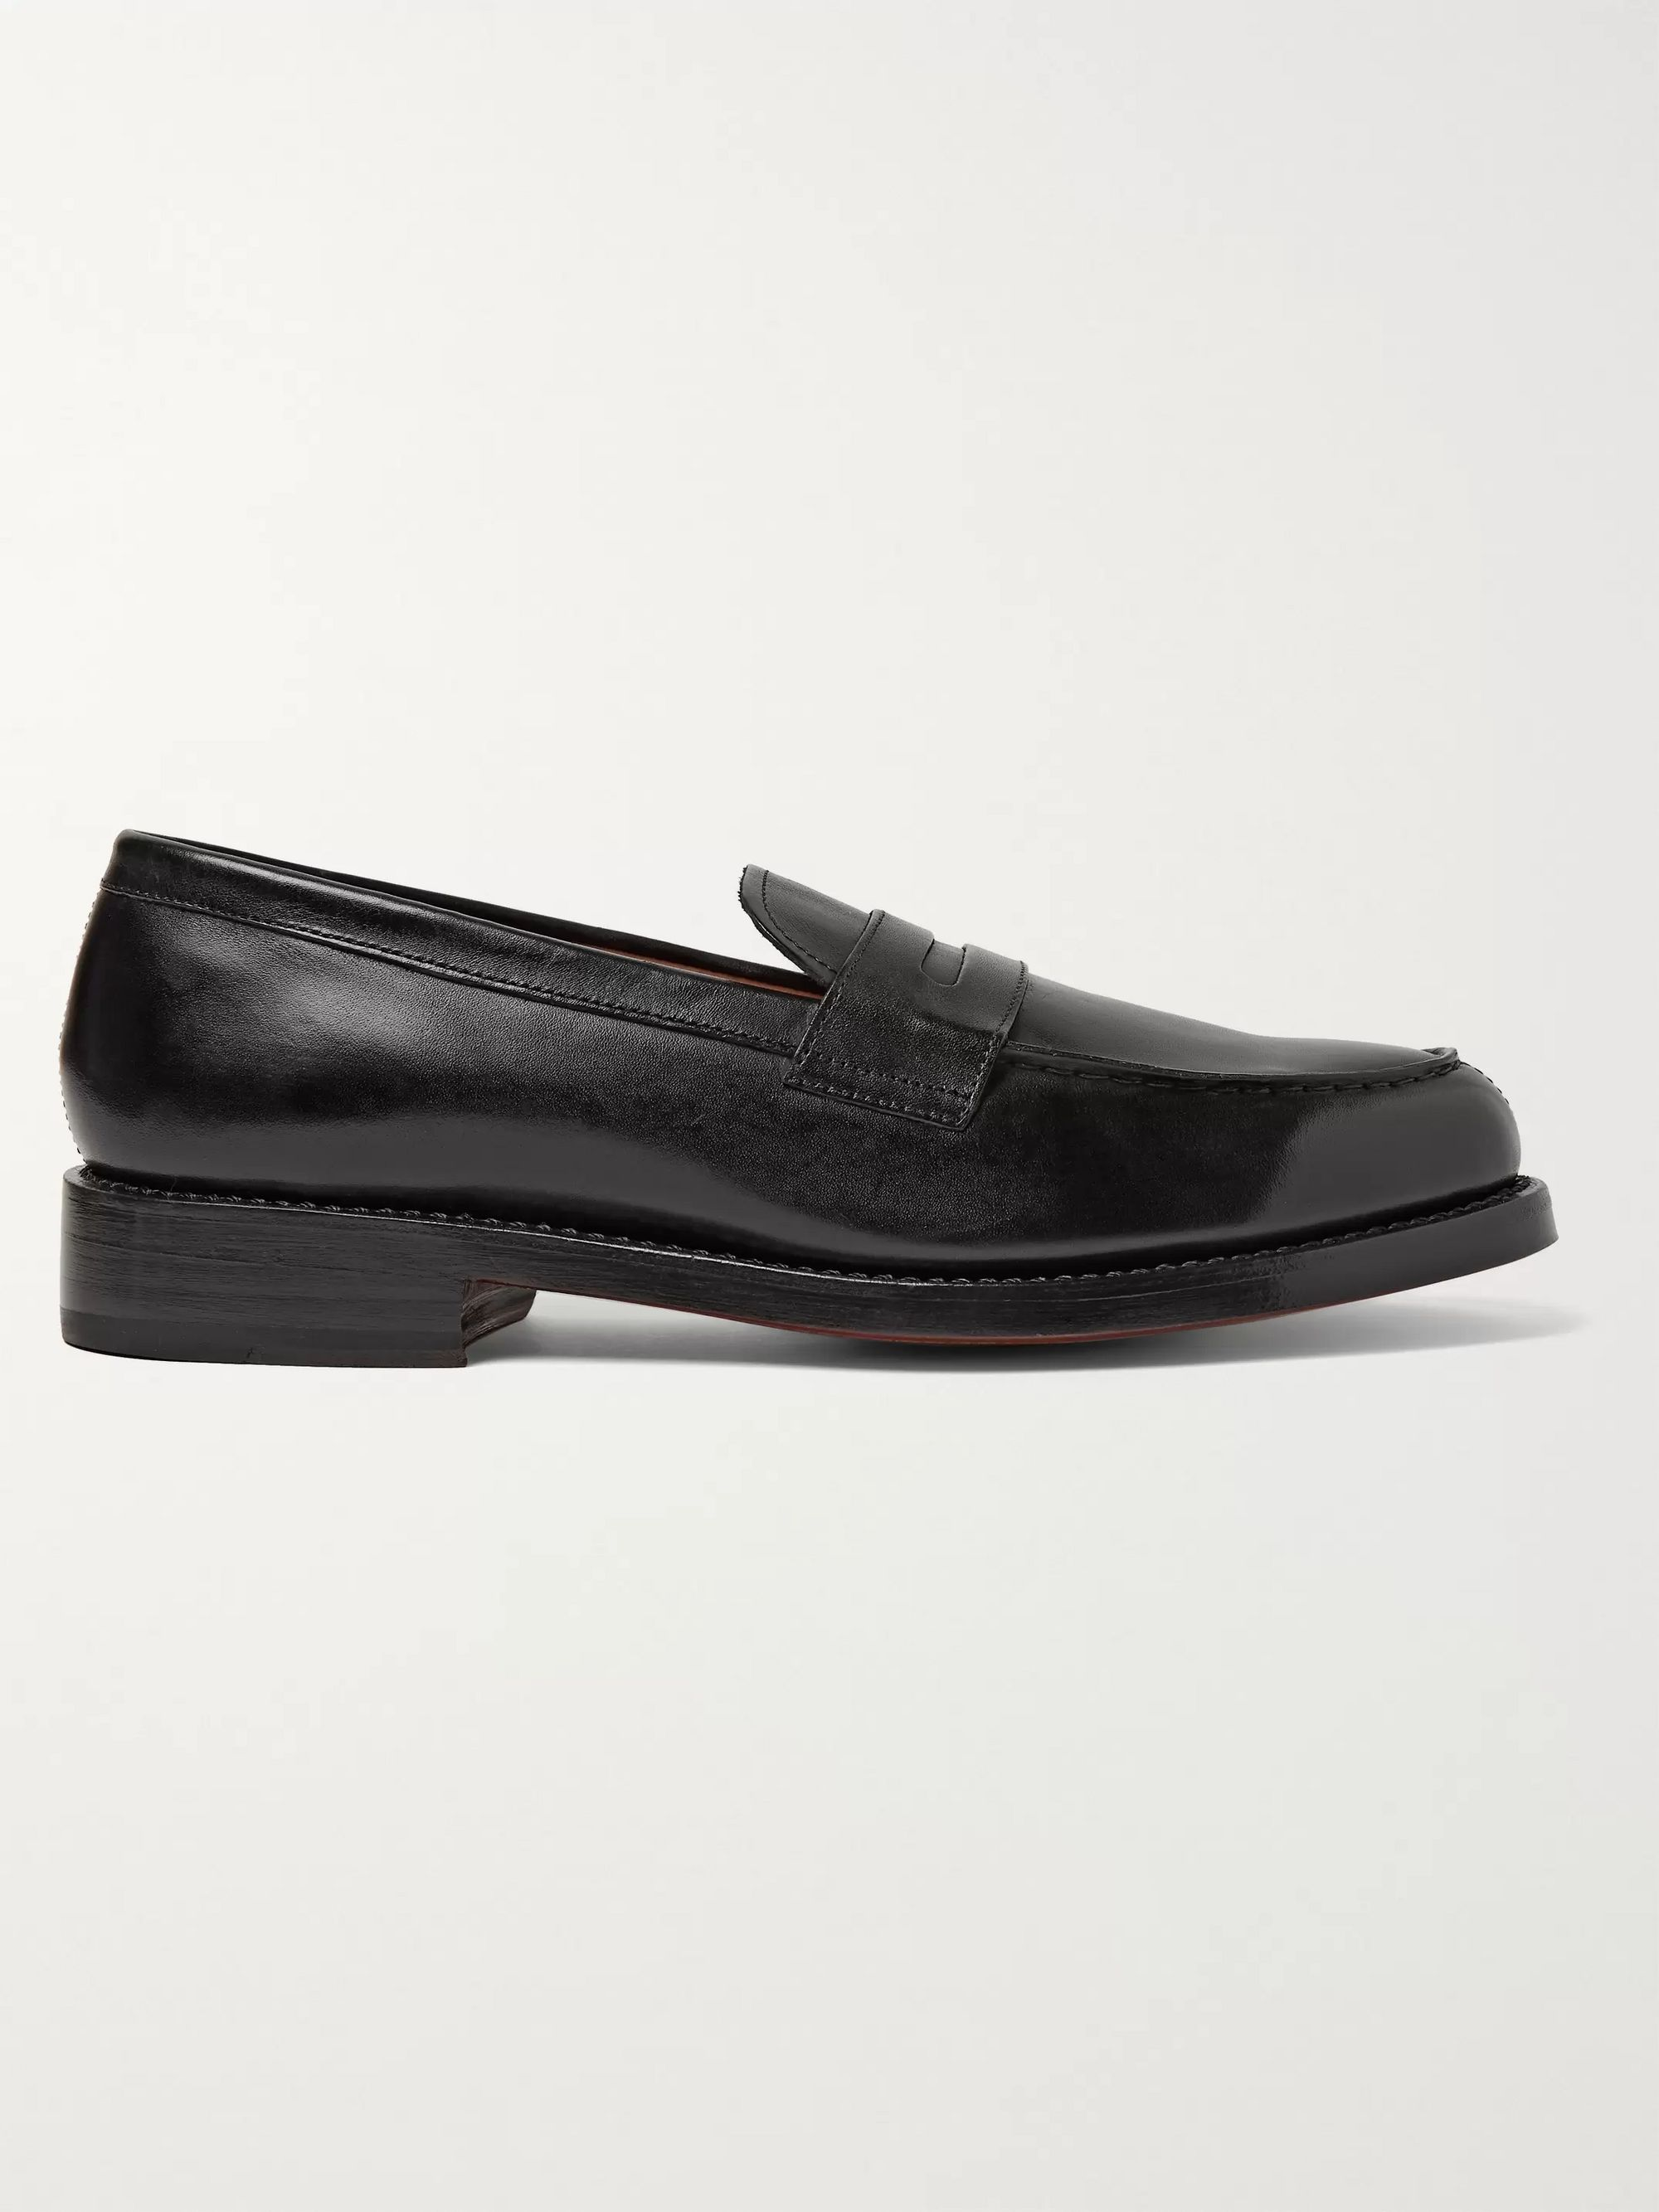 Grenson Peter Leather Penny Loafers